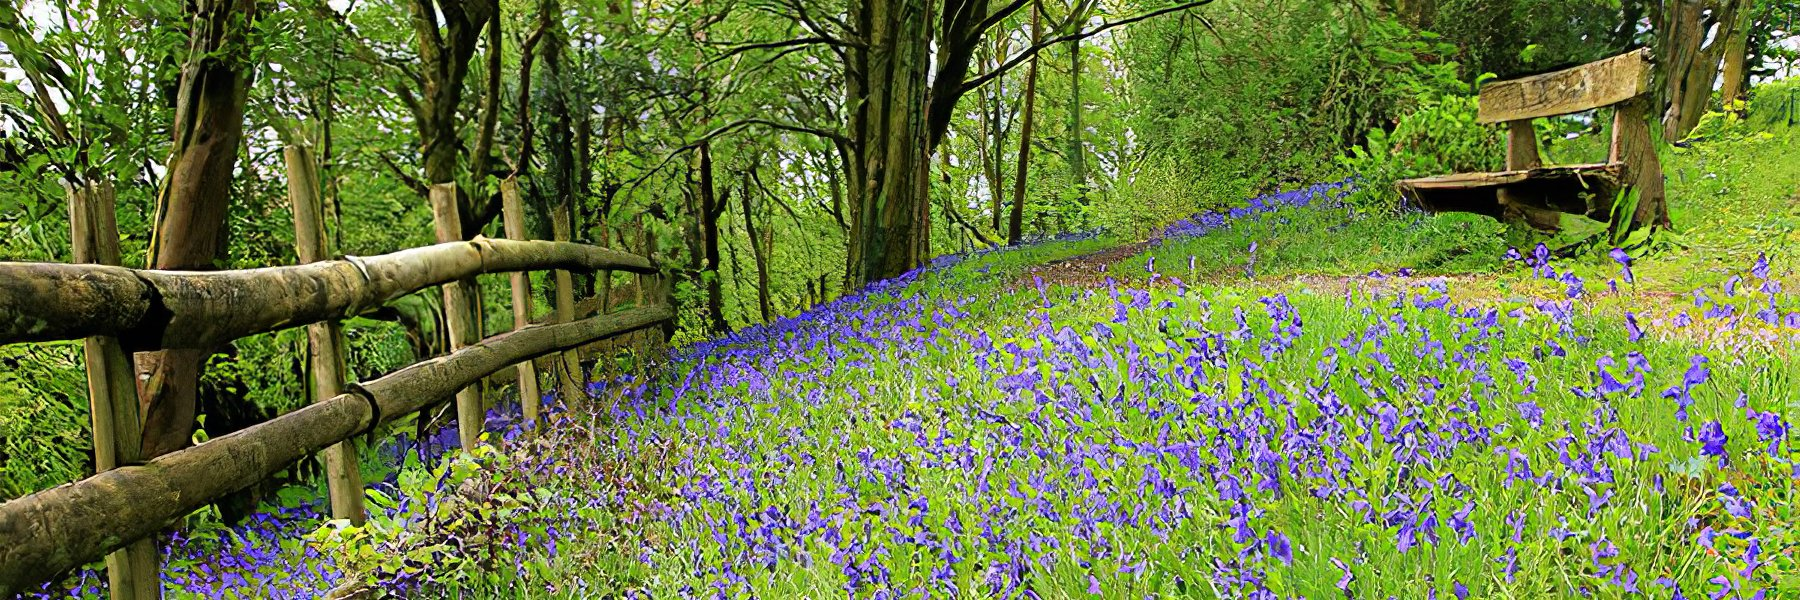 Bluebell Beauty